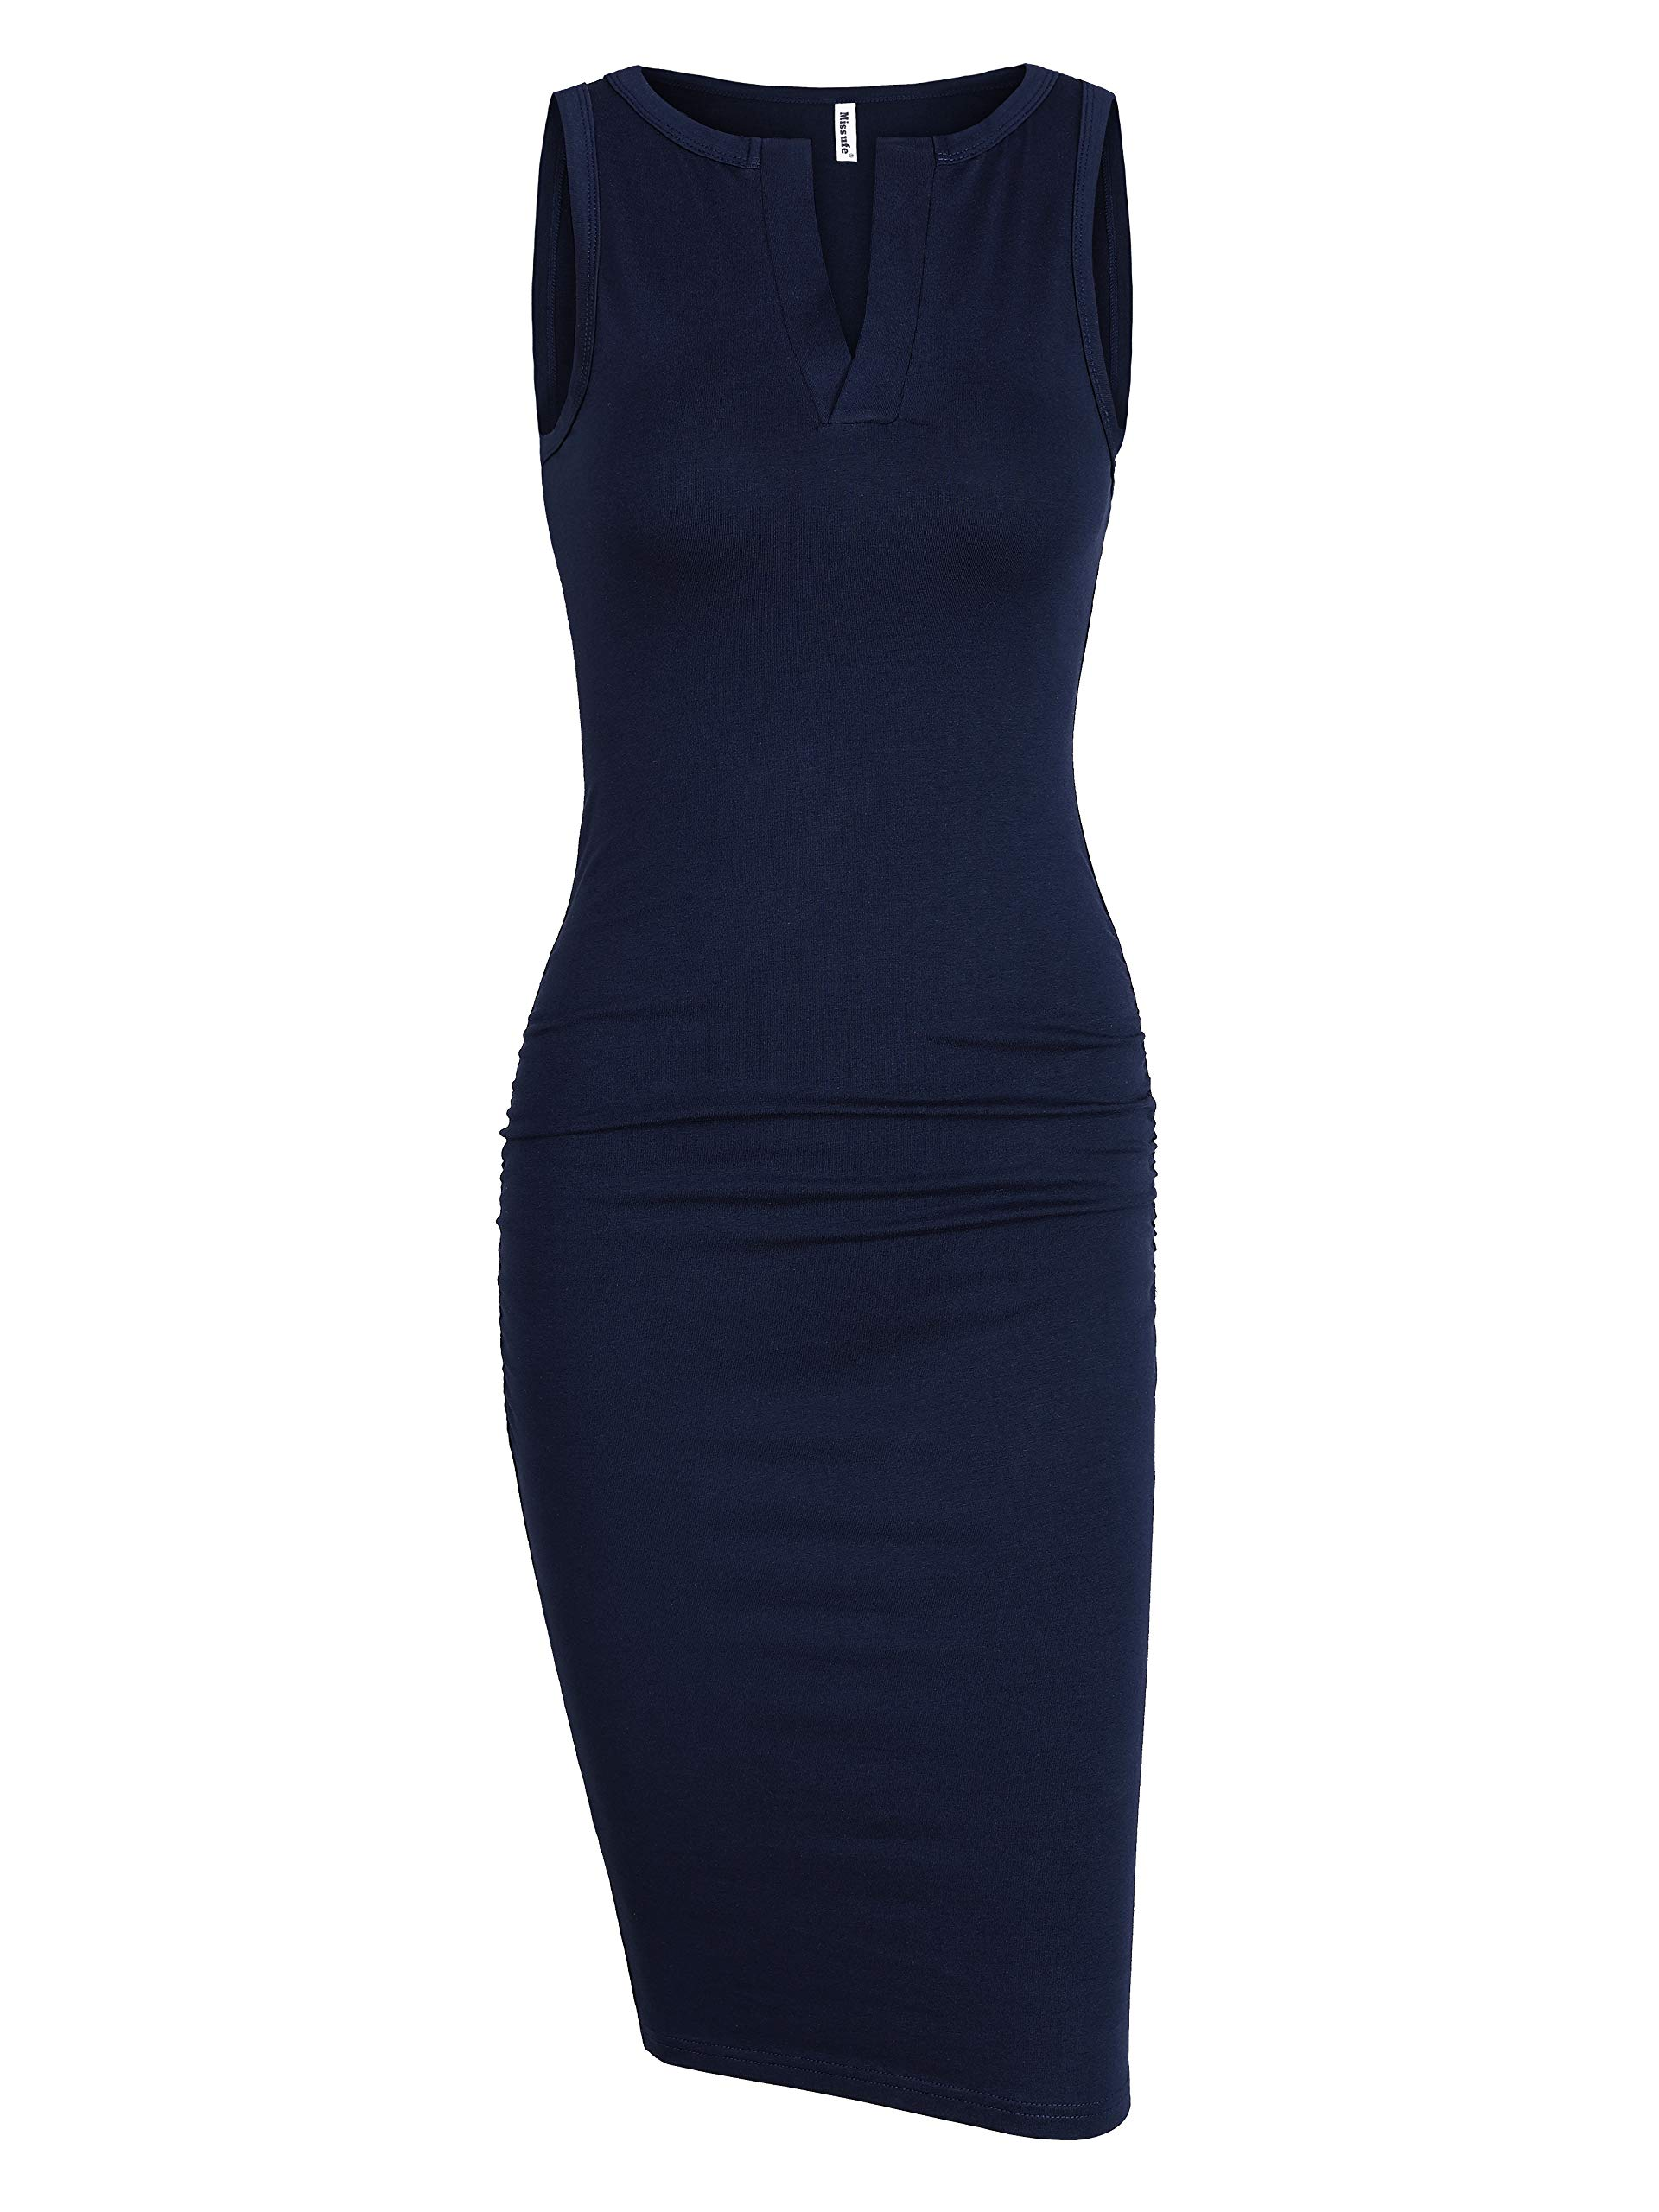 Missufe Sleeveless V Neck Ruched Sundress Sheath Midi Bodycon Tank Petite Cotton Dress for Juniors (Navy Blue, X-Small)